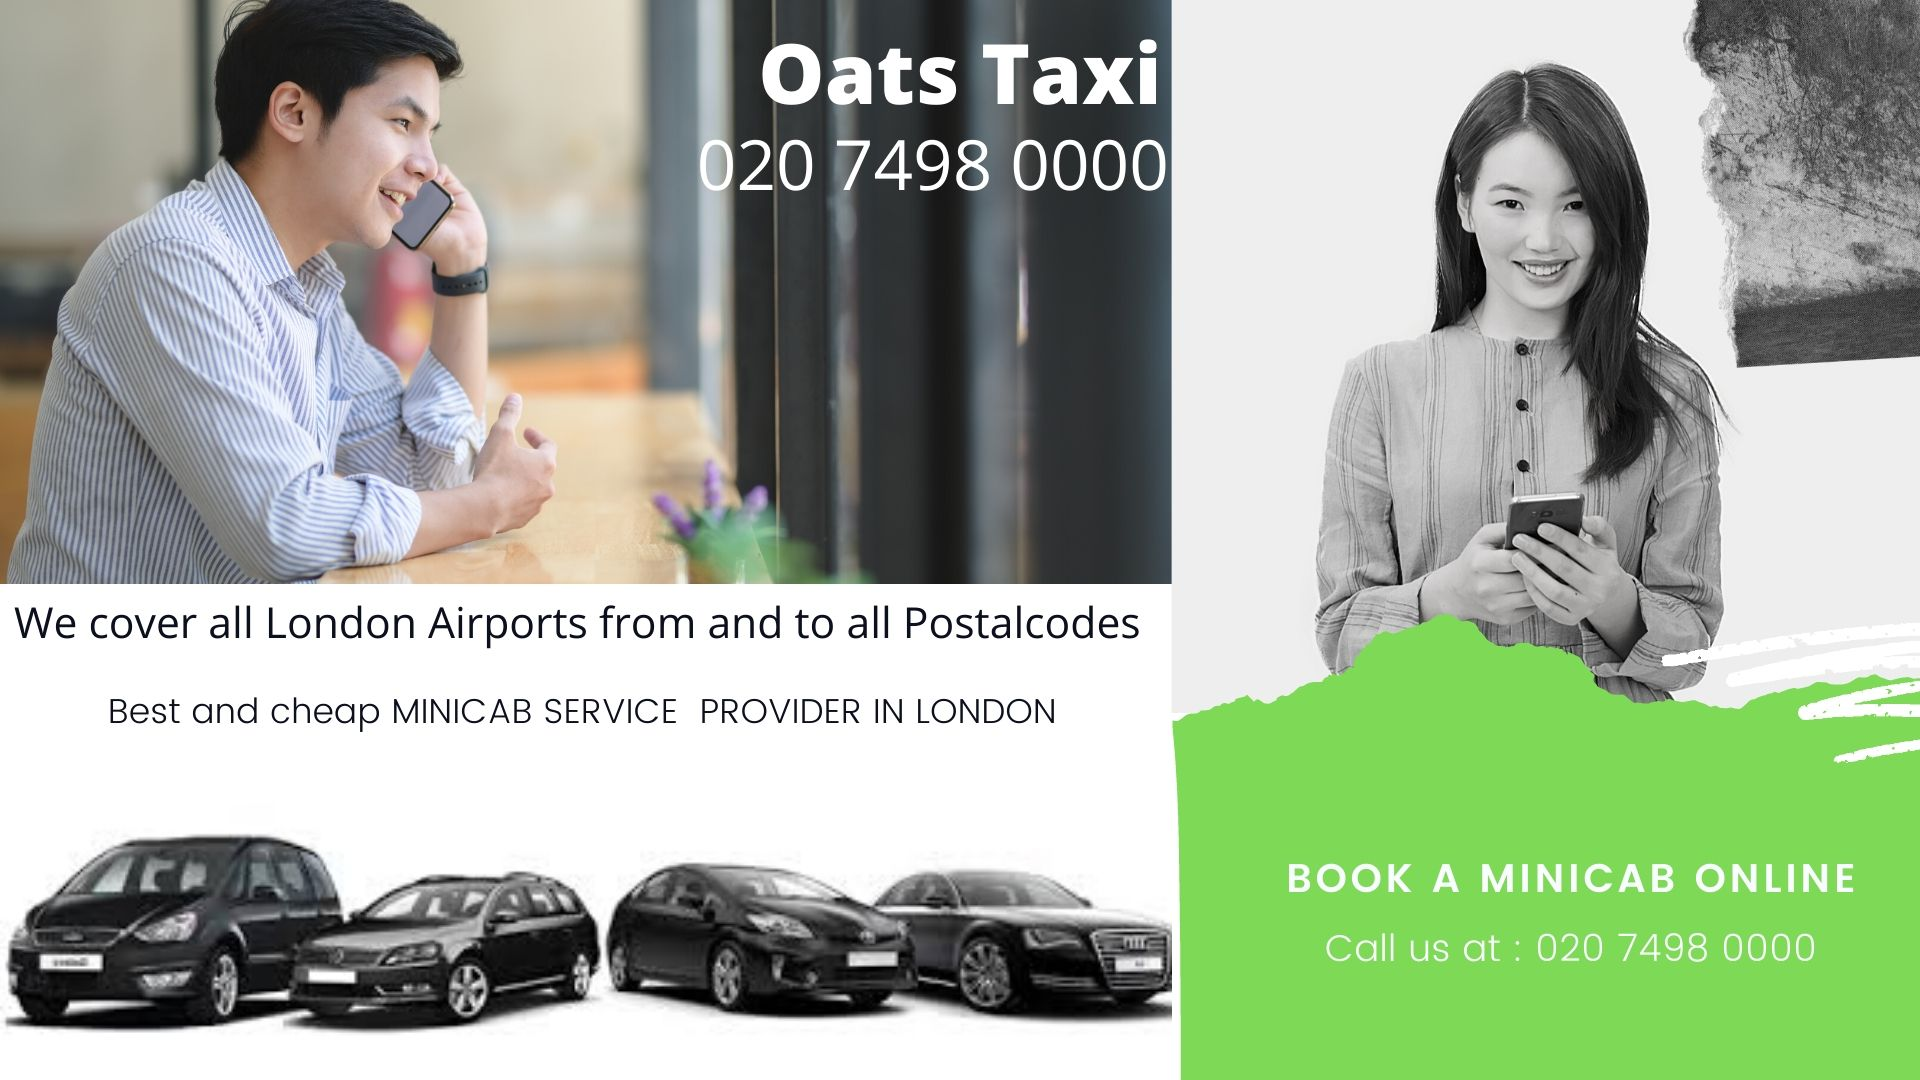 Nearest Minicab Office in Balham | Nearest Minicab Office in Gatwick Airport | Call now : 02074980000